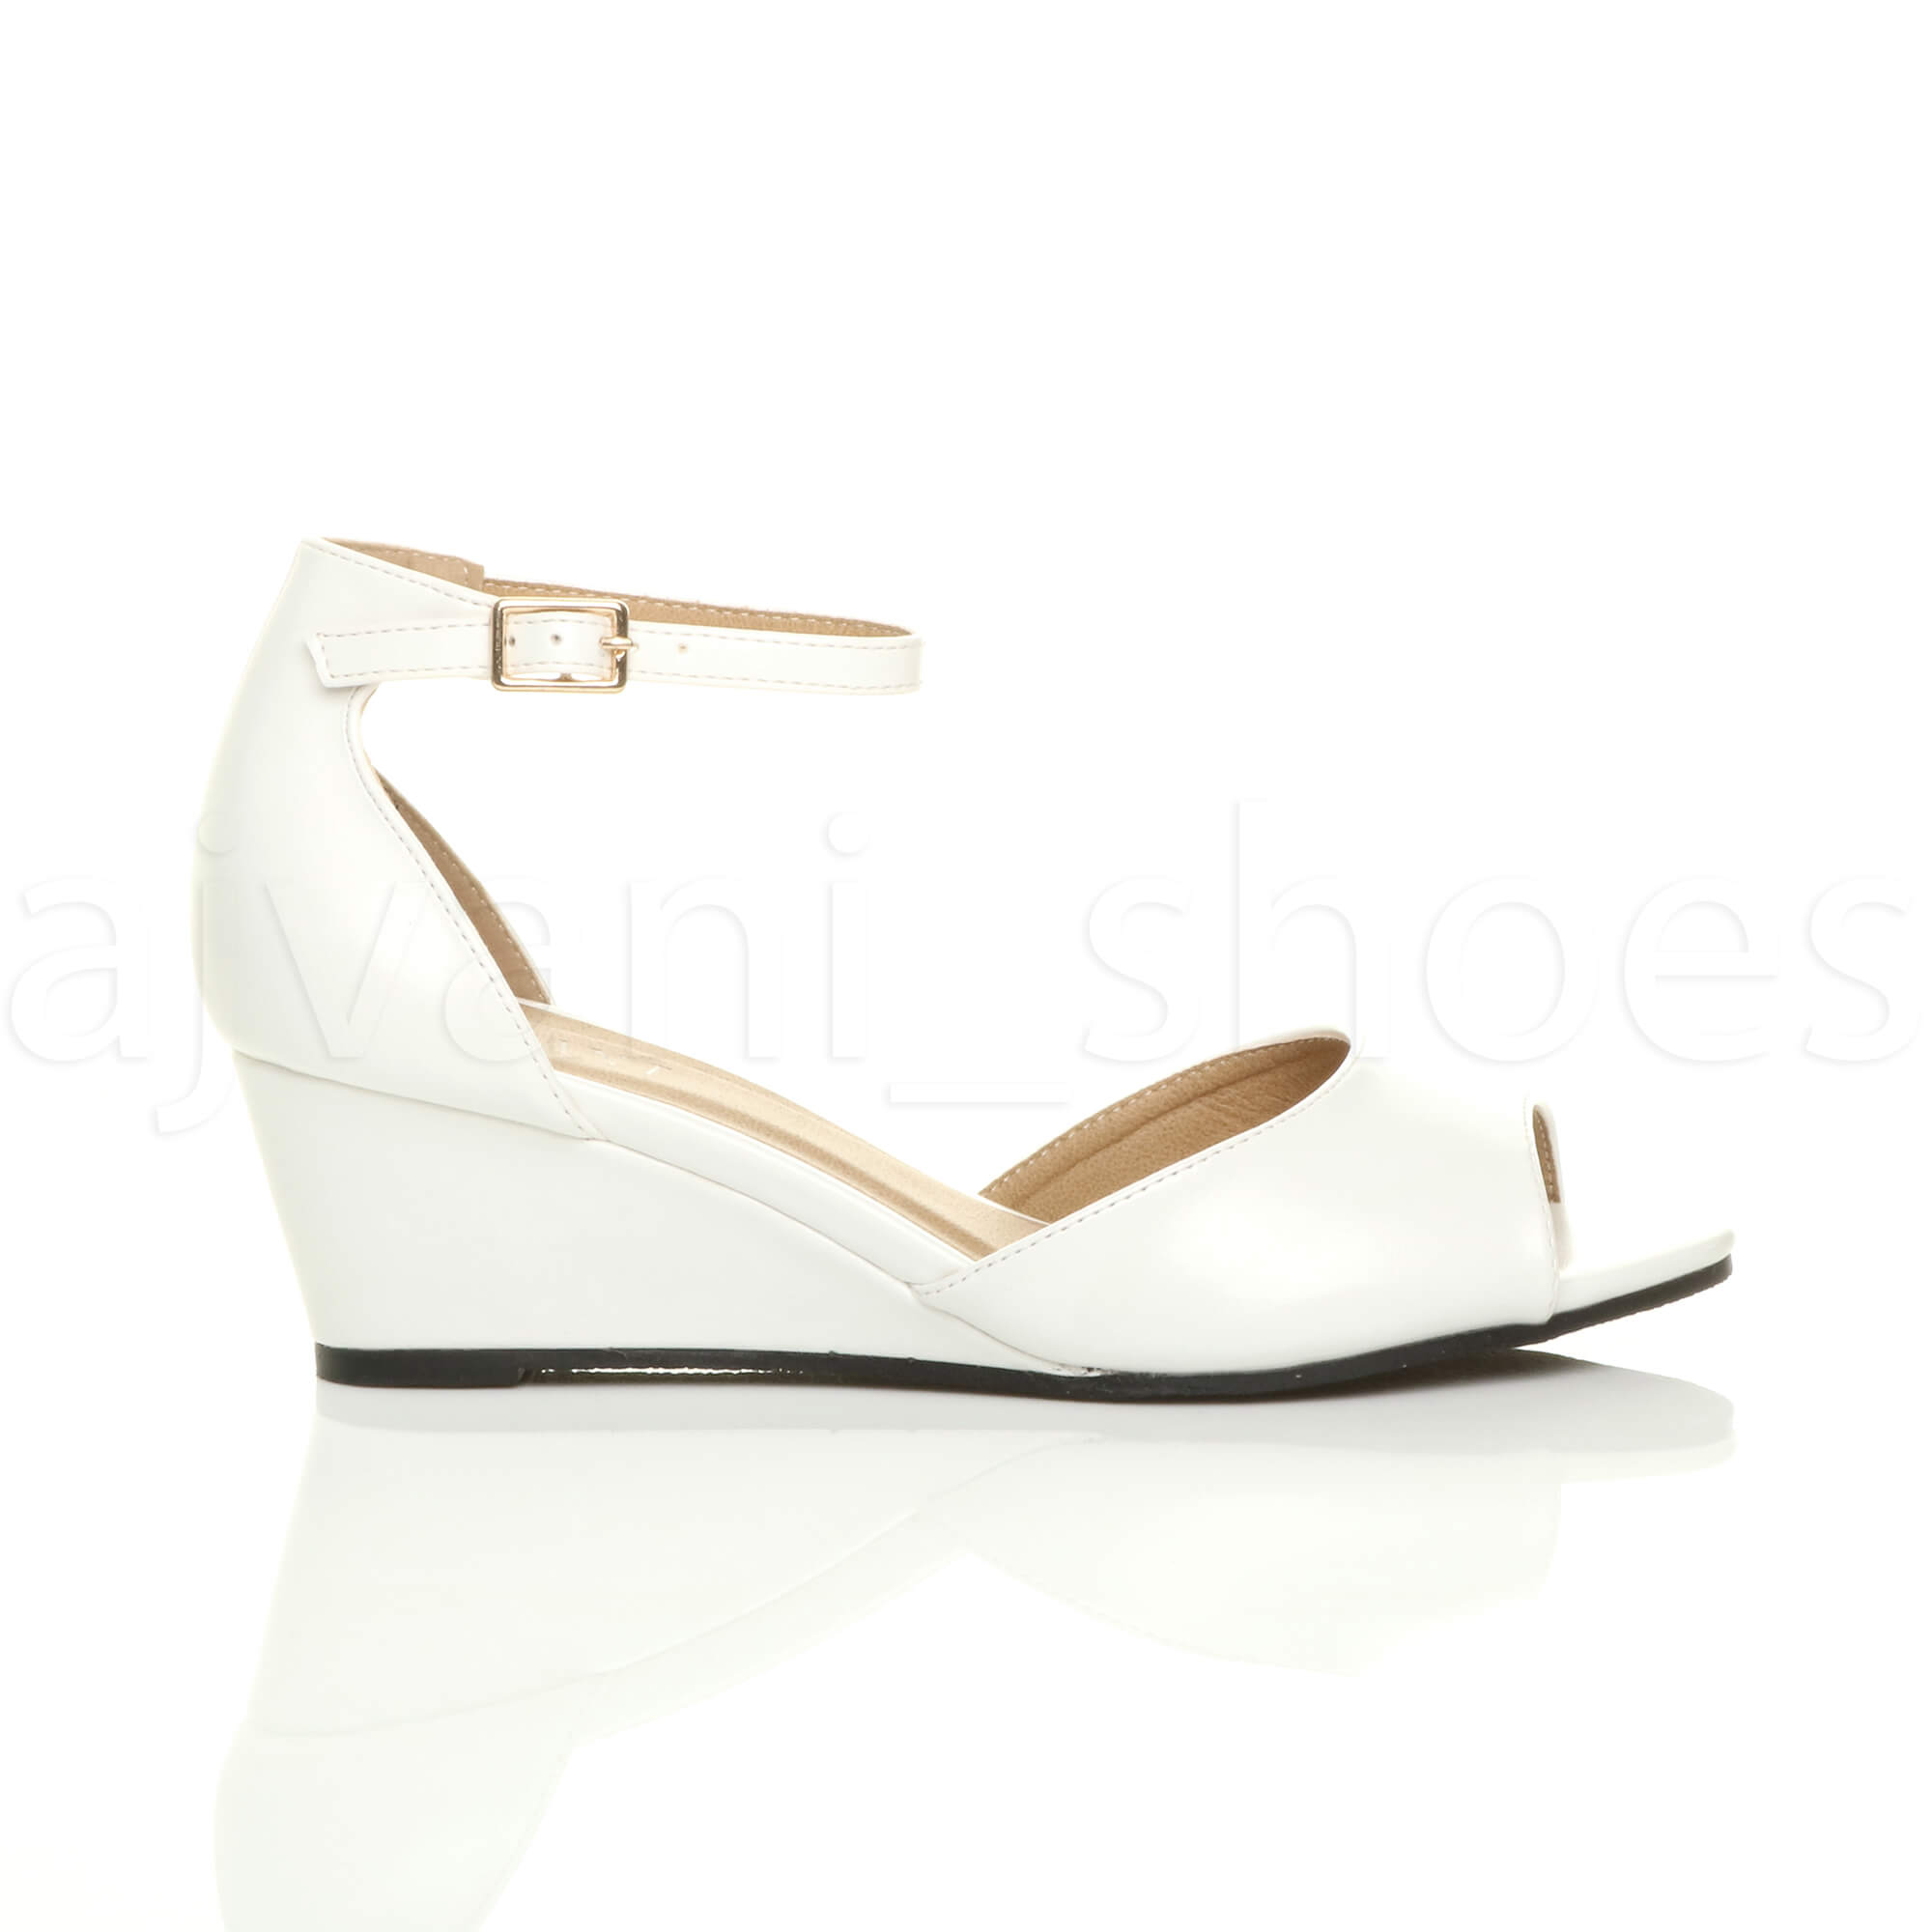 WOMENS-LADIES-LOW-MID-WEDGE-HEEL-ANKLE-STRAP-SMART-CASUAL-EVENING-SANDALS-SIZE thumbnail 163